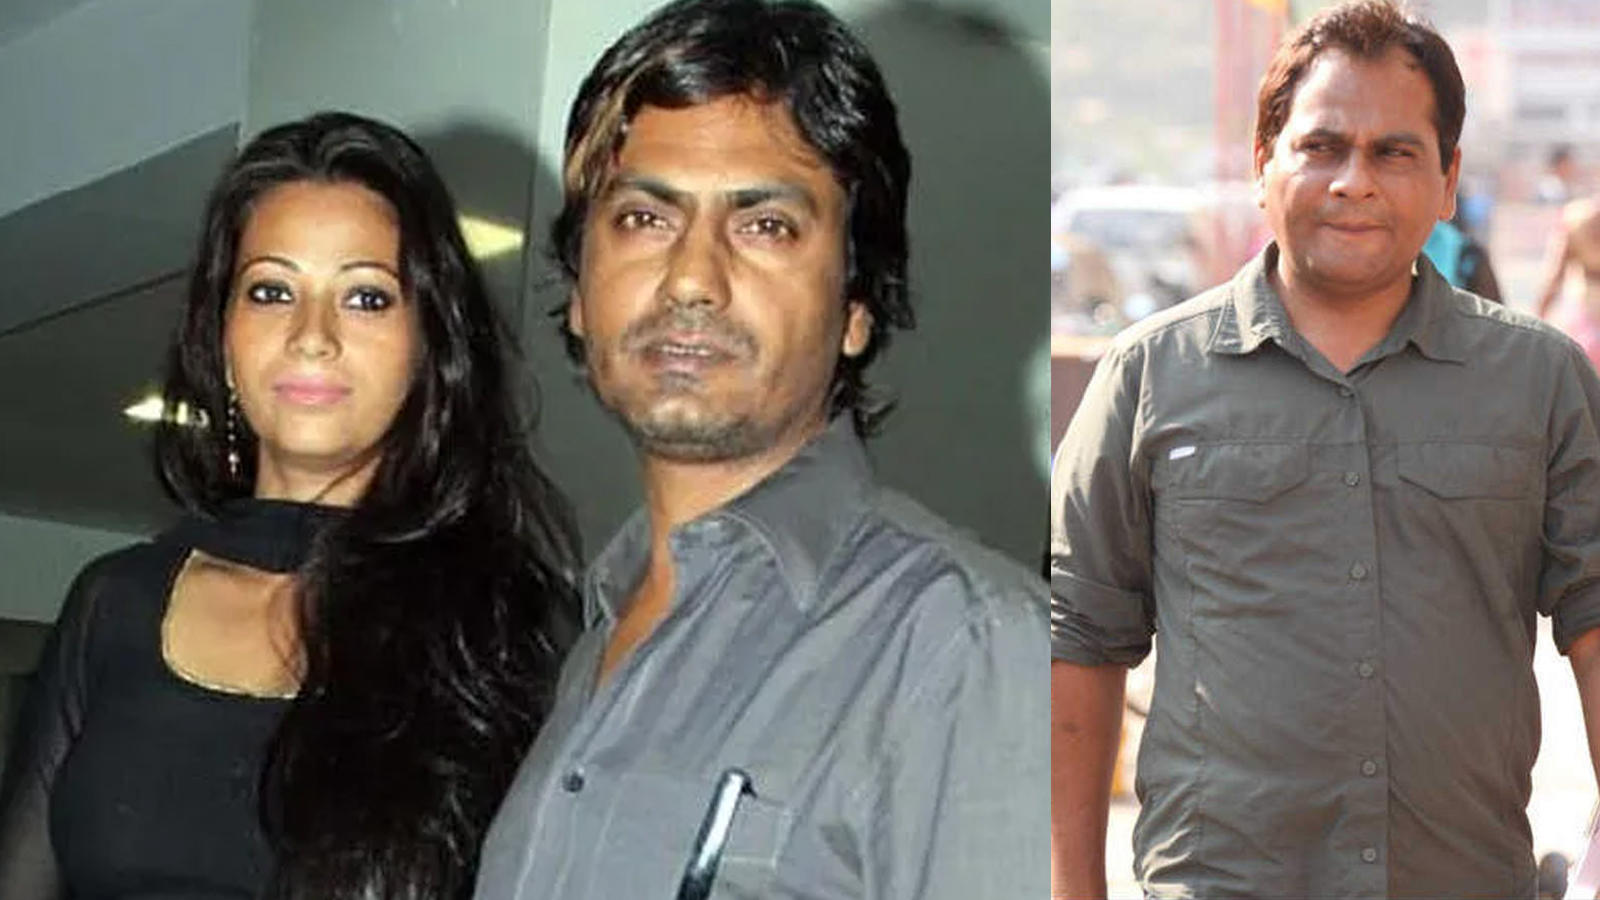 nawazuddin-siddiquis-wife-aaliya-wishes-to-sort-things-out-with-the-actors-brother-shamas-as-she-doesnt-want-divorce-anymore